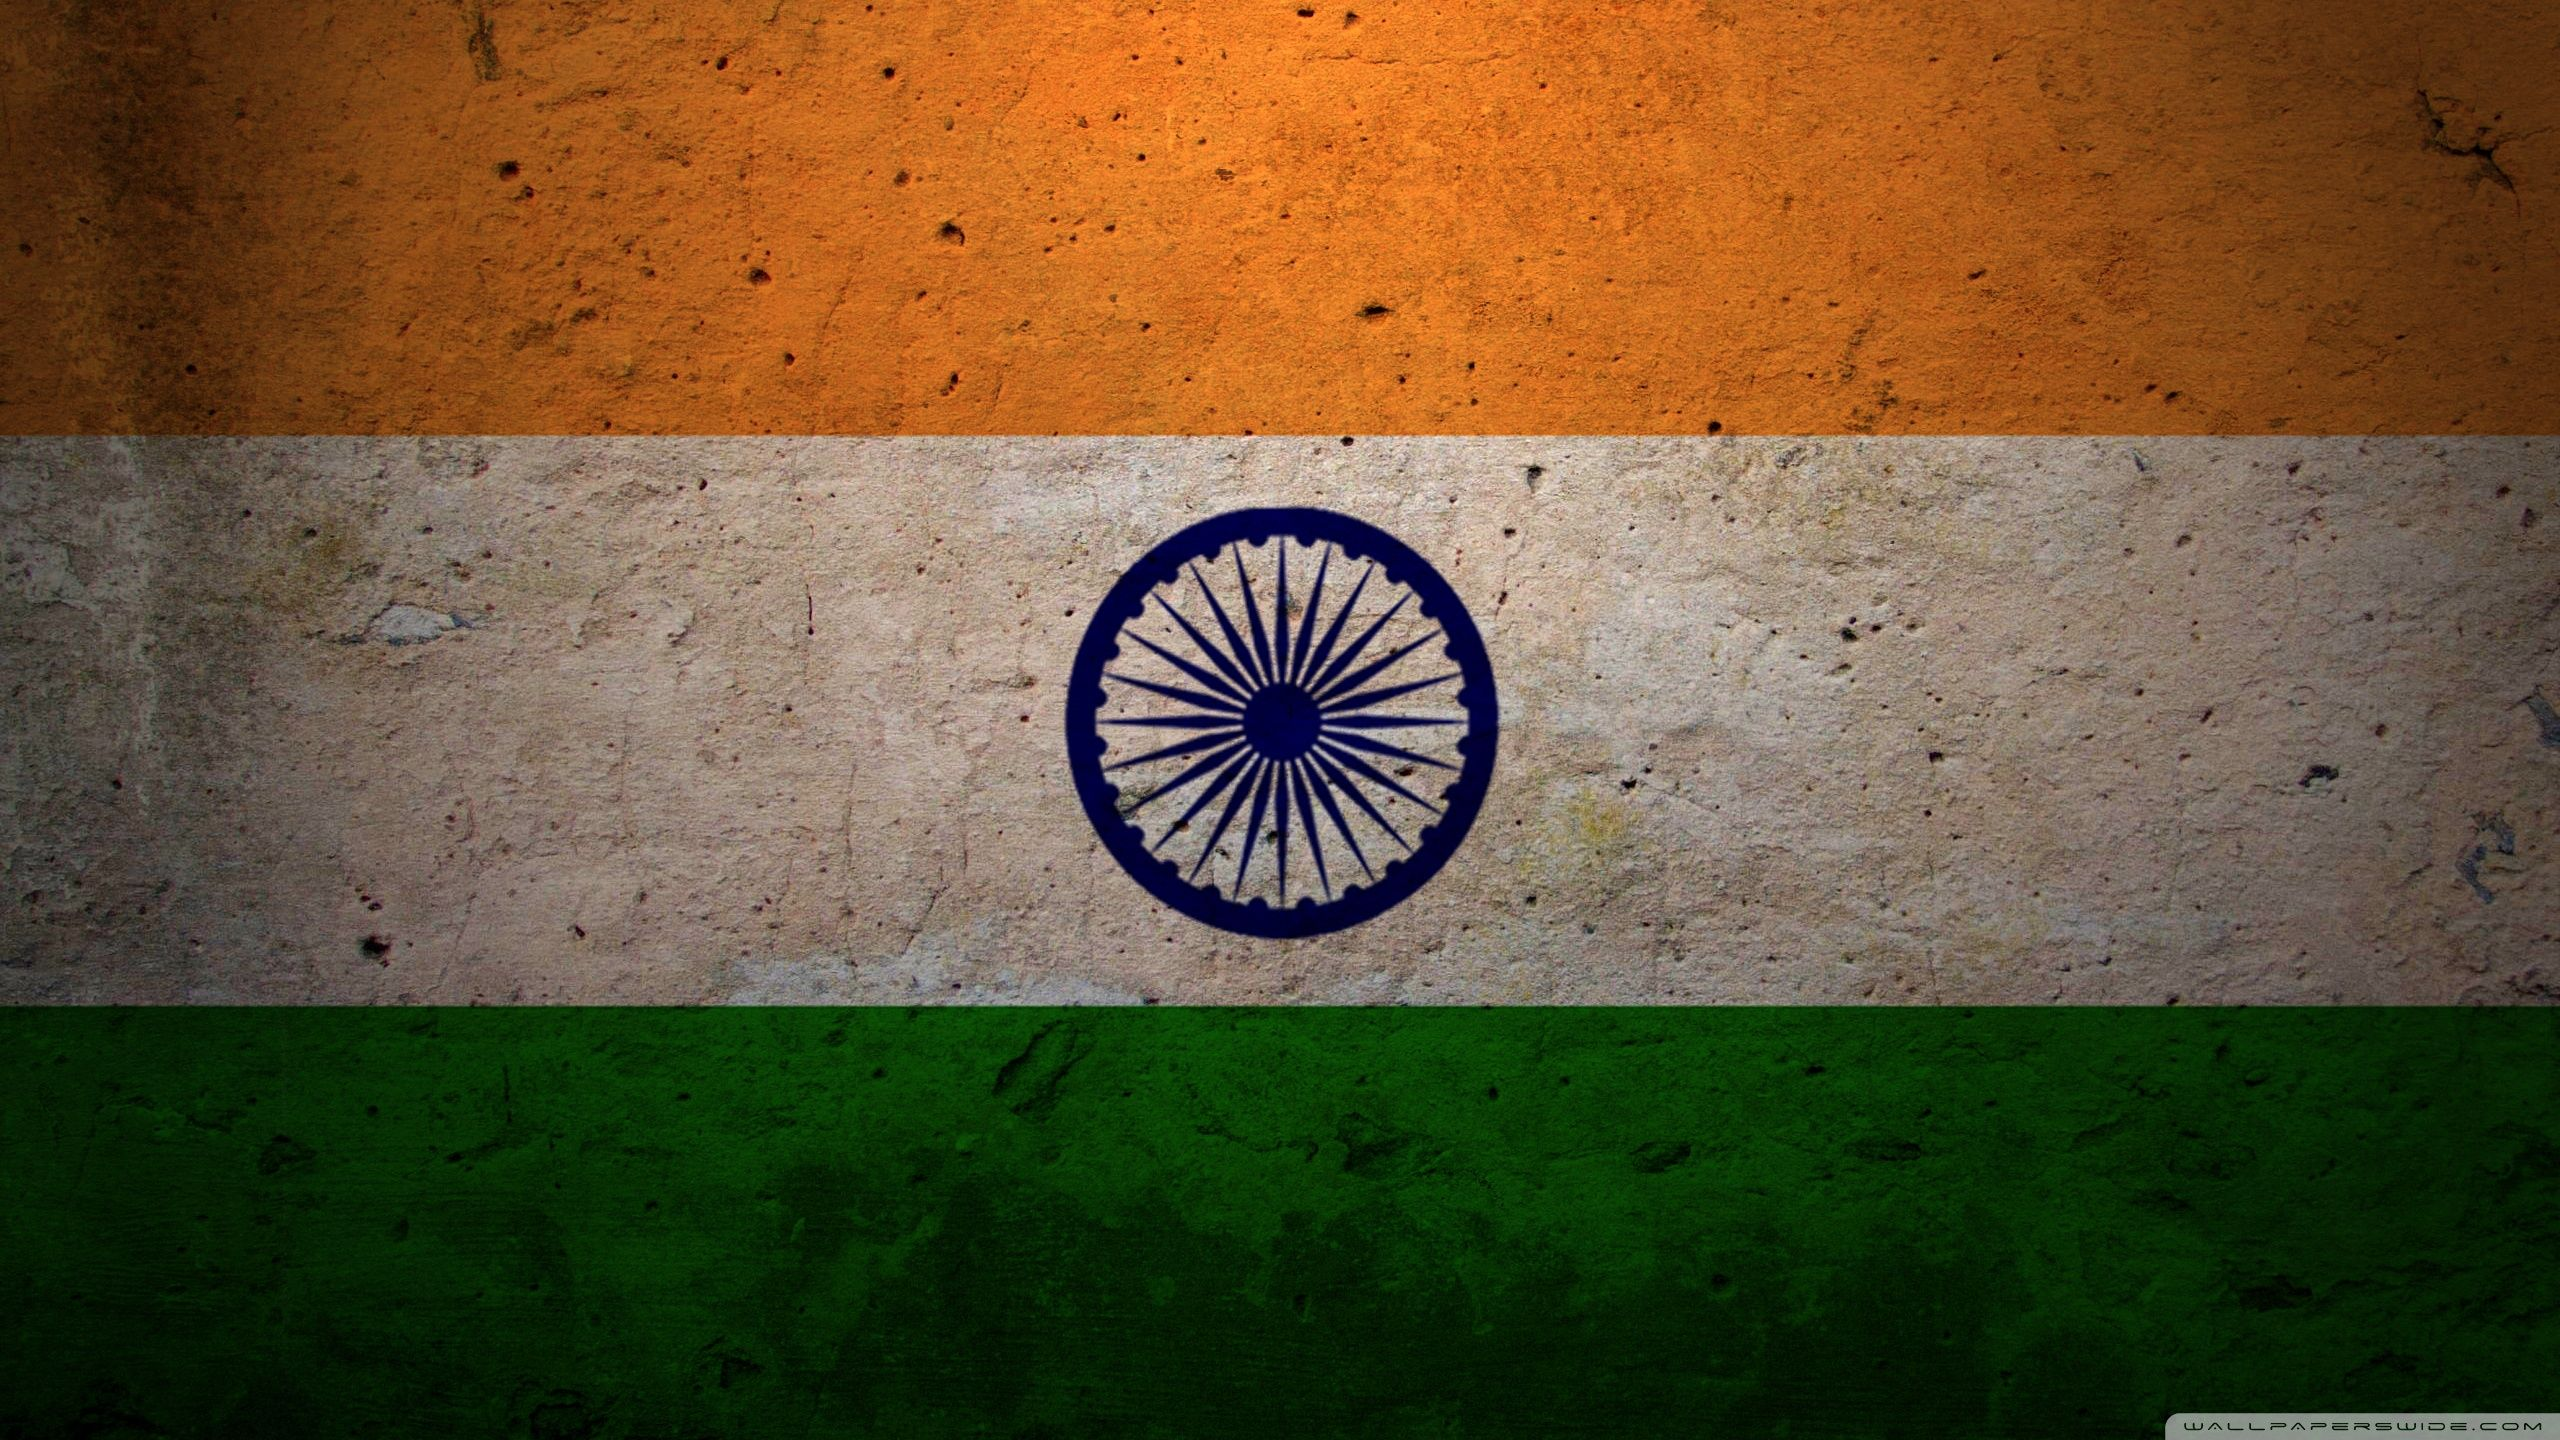 Indian Flag 4k Wallpaper: Indian Culture Wallpapers